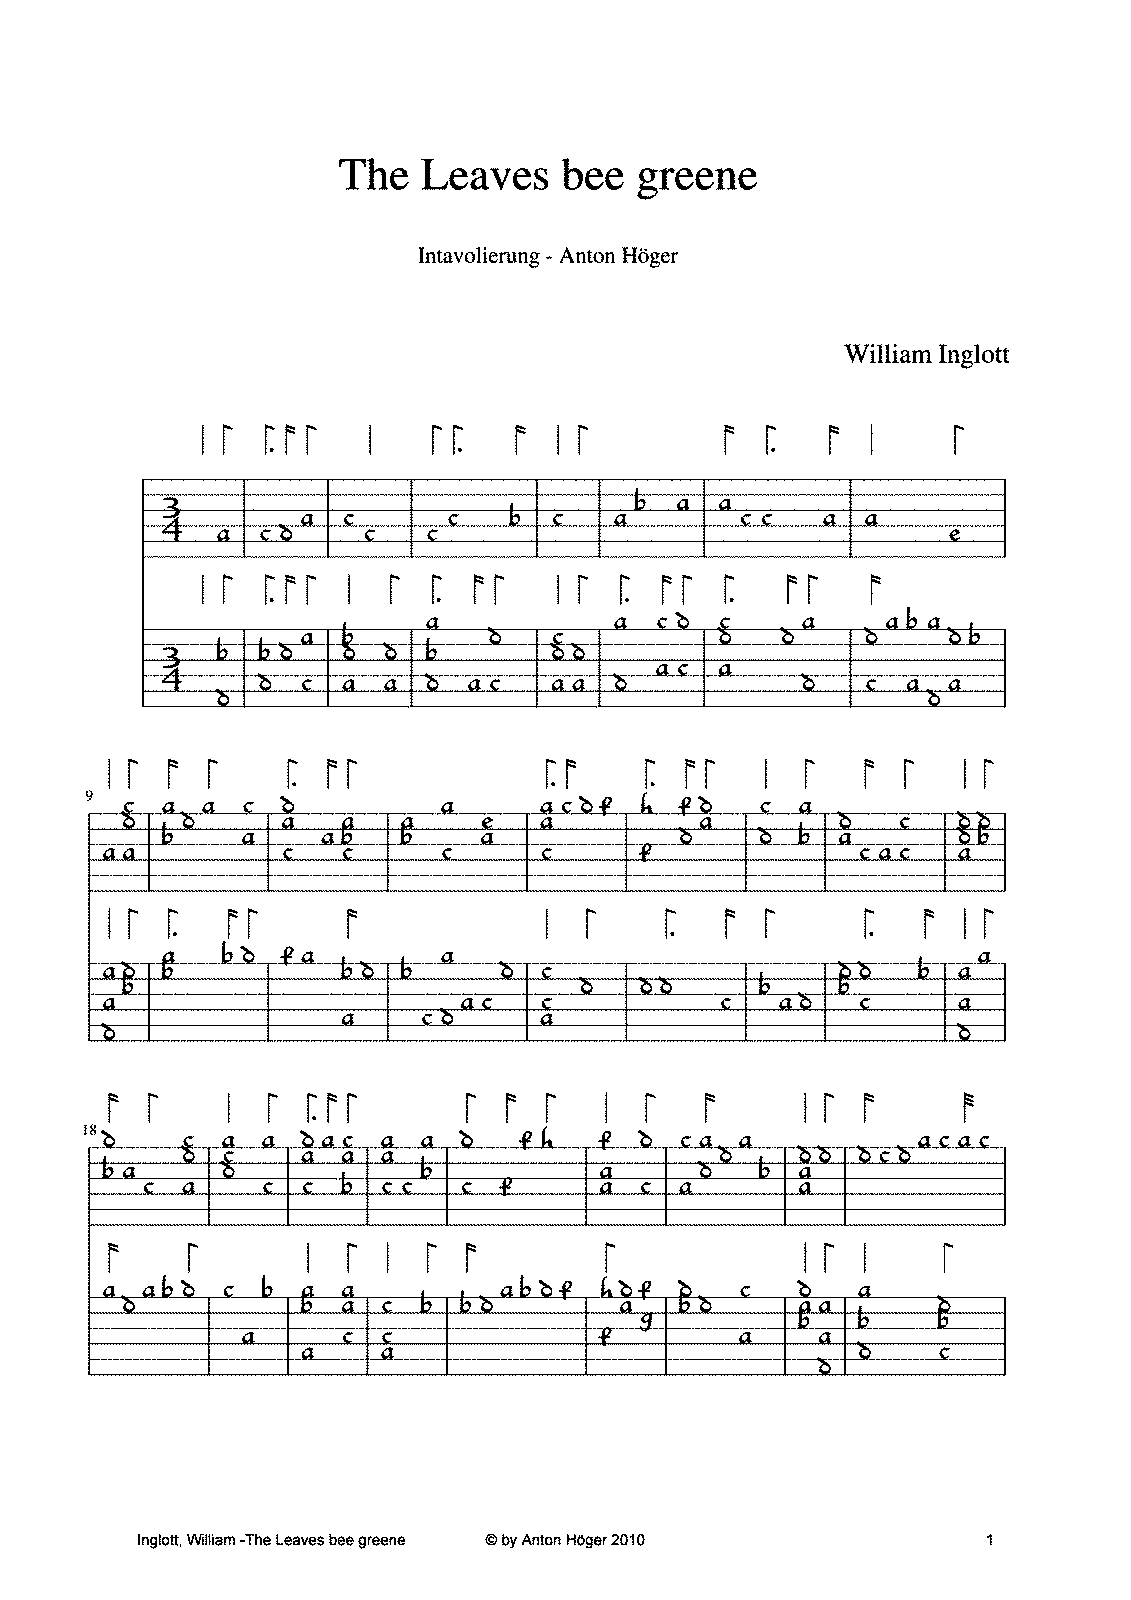 PMLP356012-Inglott, William -The Leaves bee greene.pdf